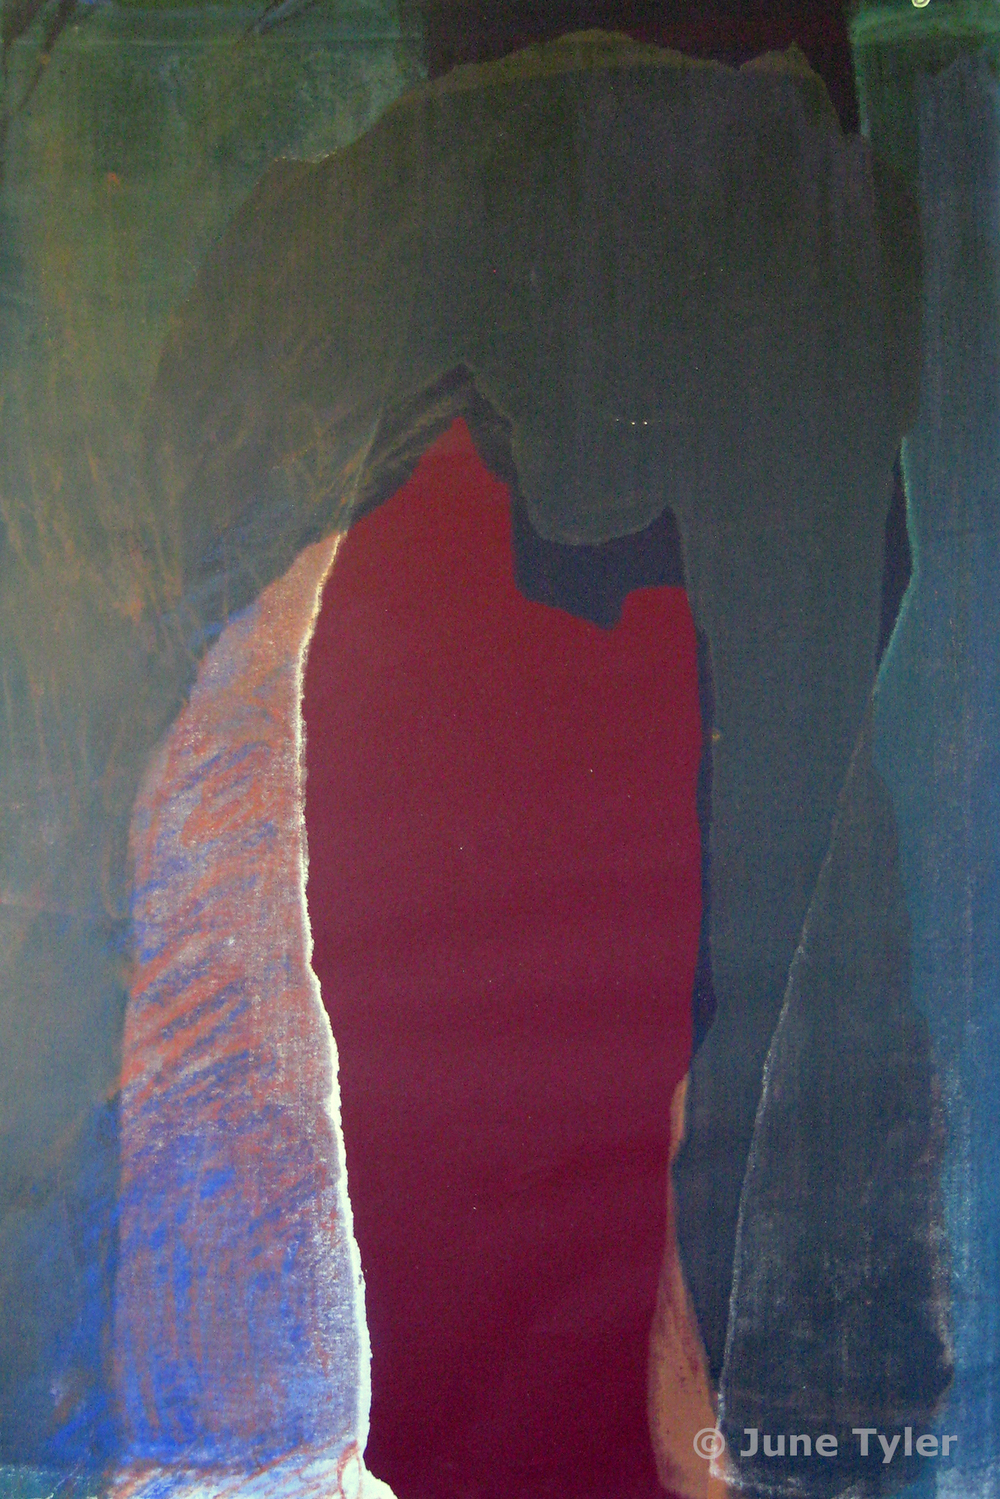 """Cave series"" 1989 Silkscreen monoprint 22.5"" x 15 1/8"""